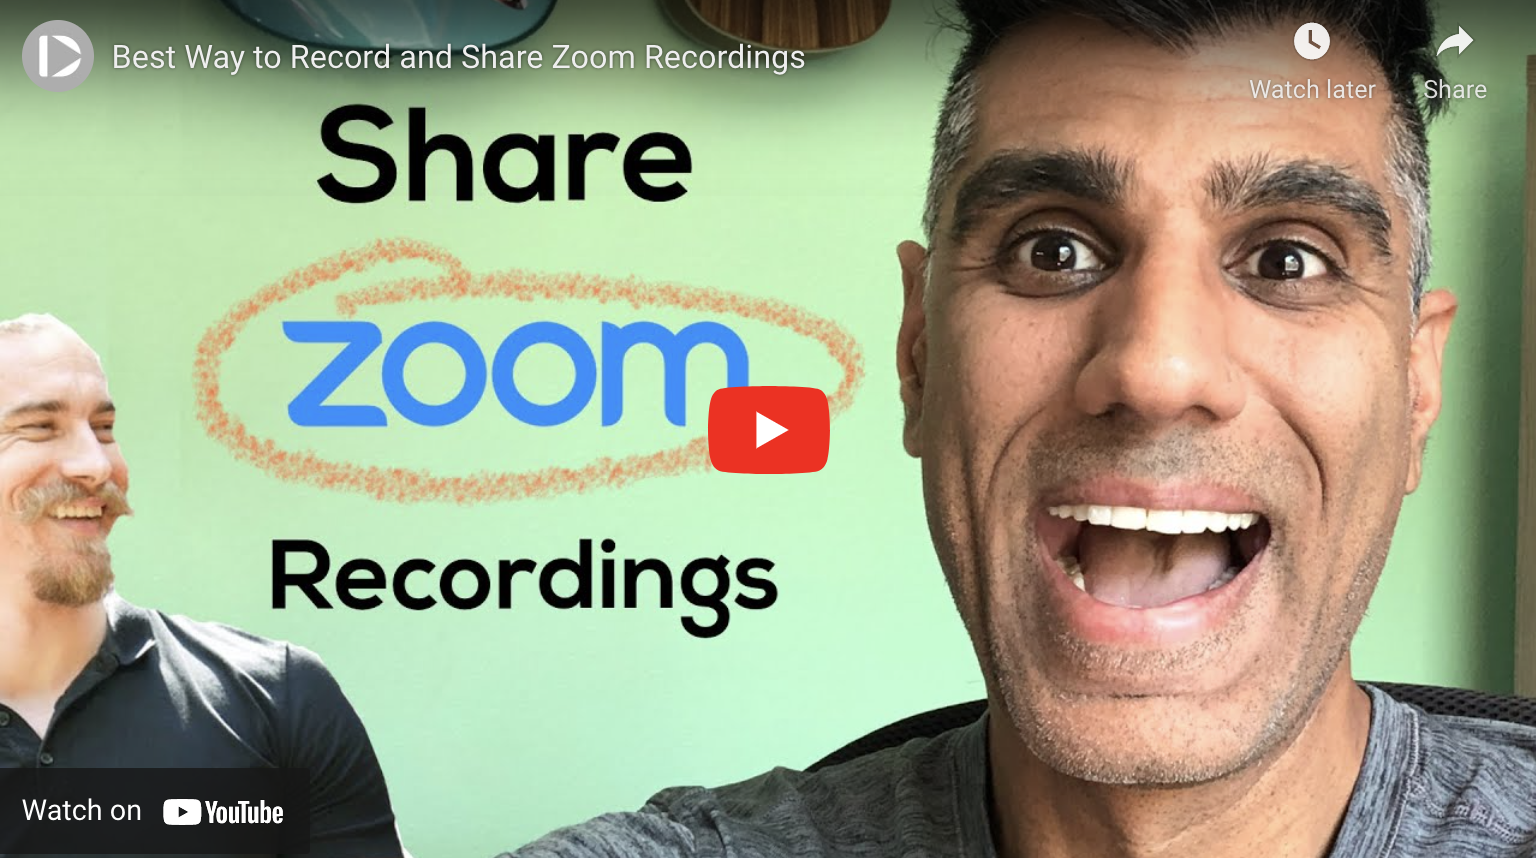 The Best Way to Record and Share Zoom Recordings